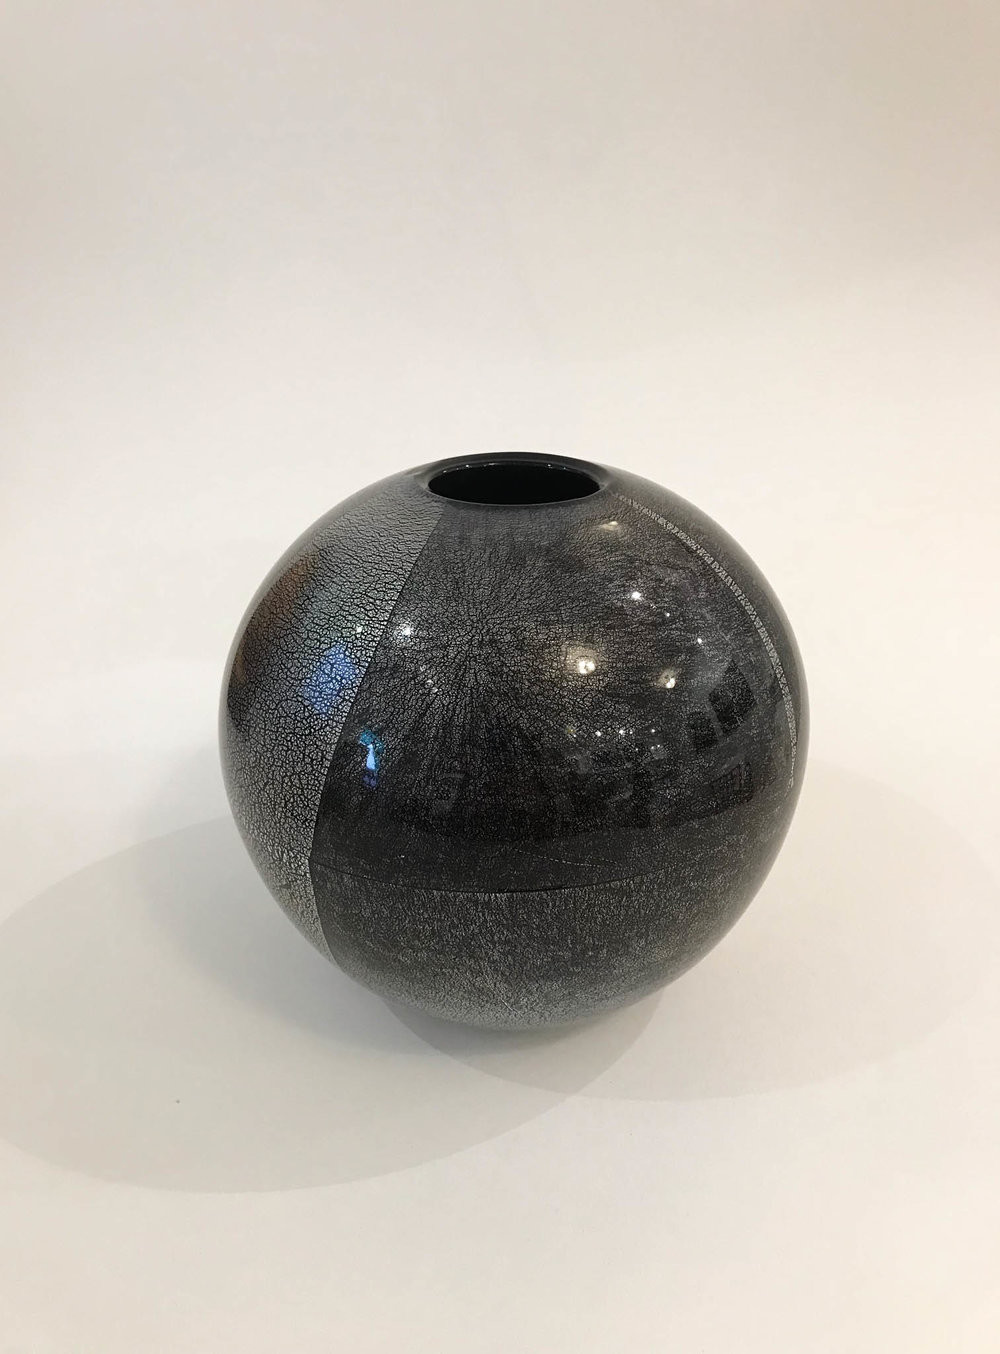 glass cylinder vase 12 x 5 of david benyosef 13forest gallery pertaining to orb vase hand blown black glass with silver leaf 6 1 2